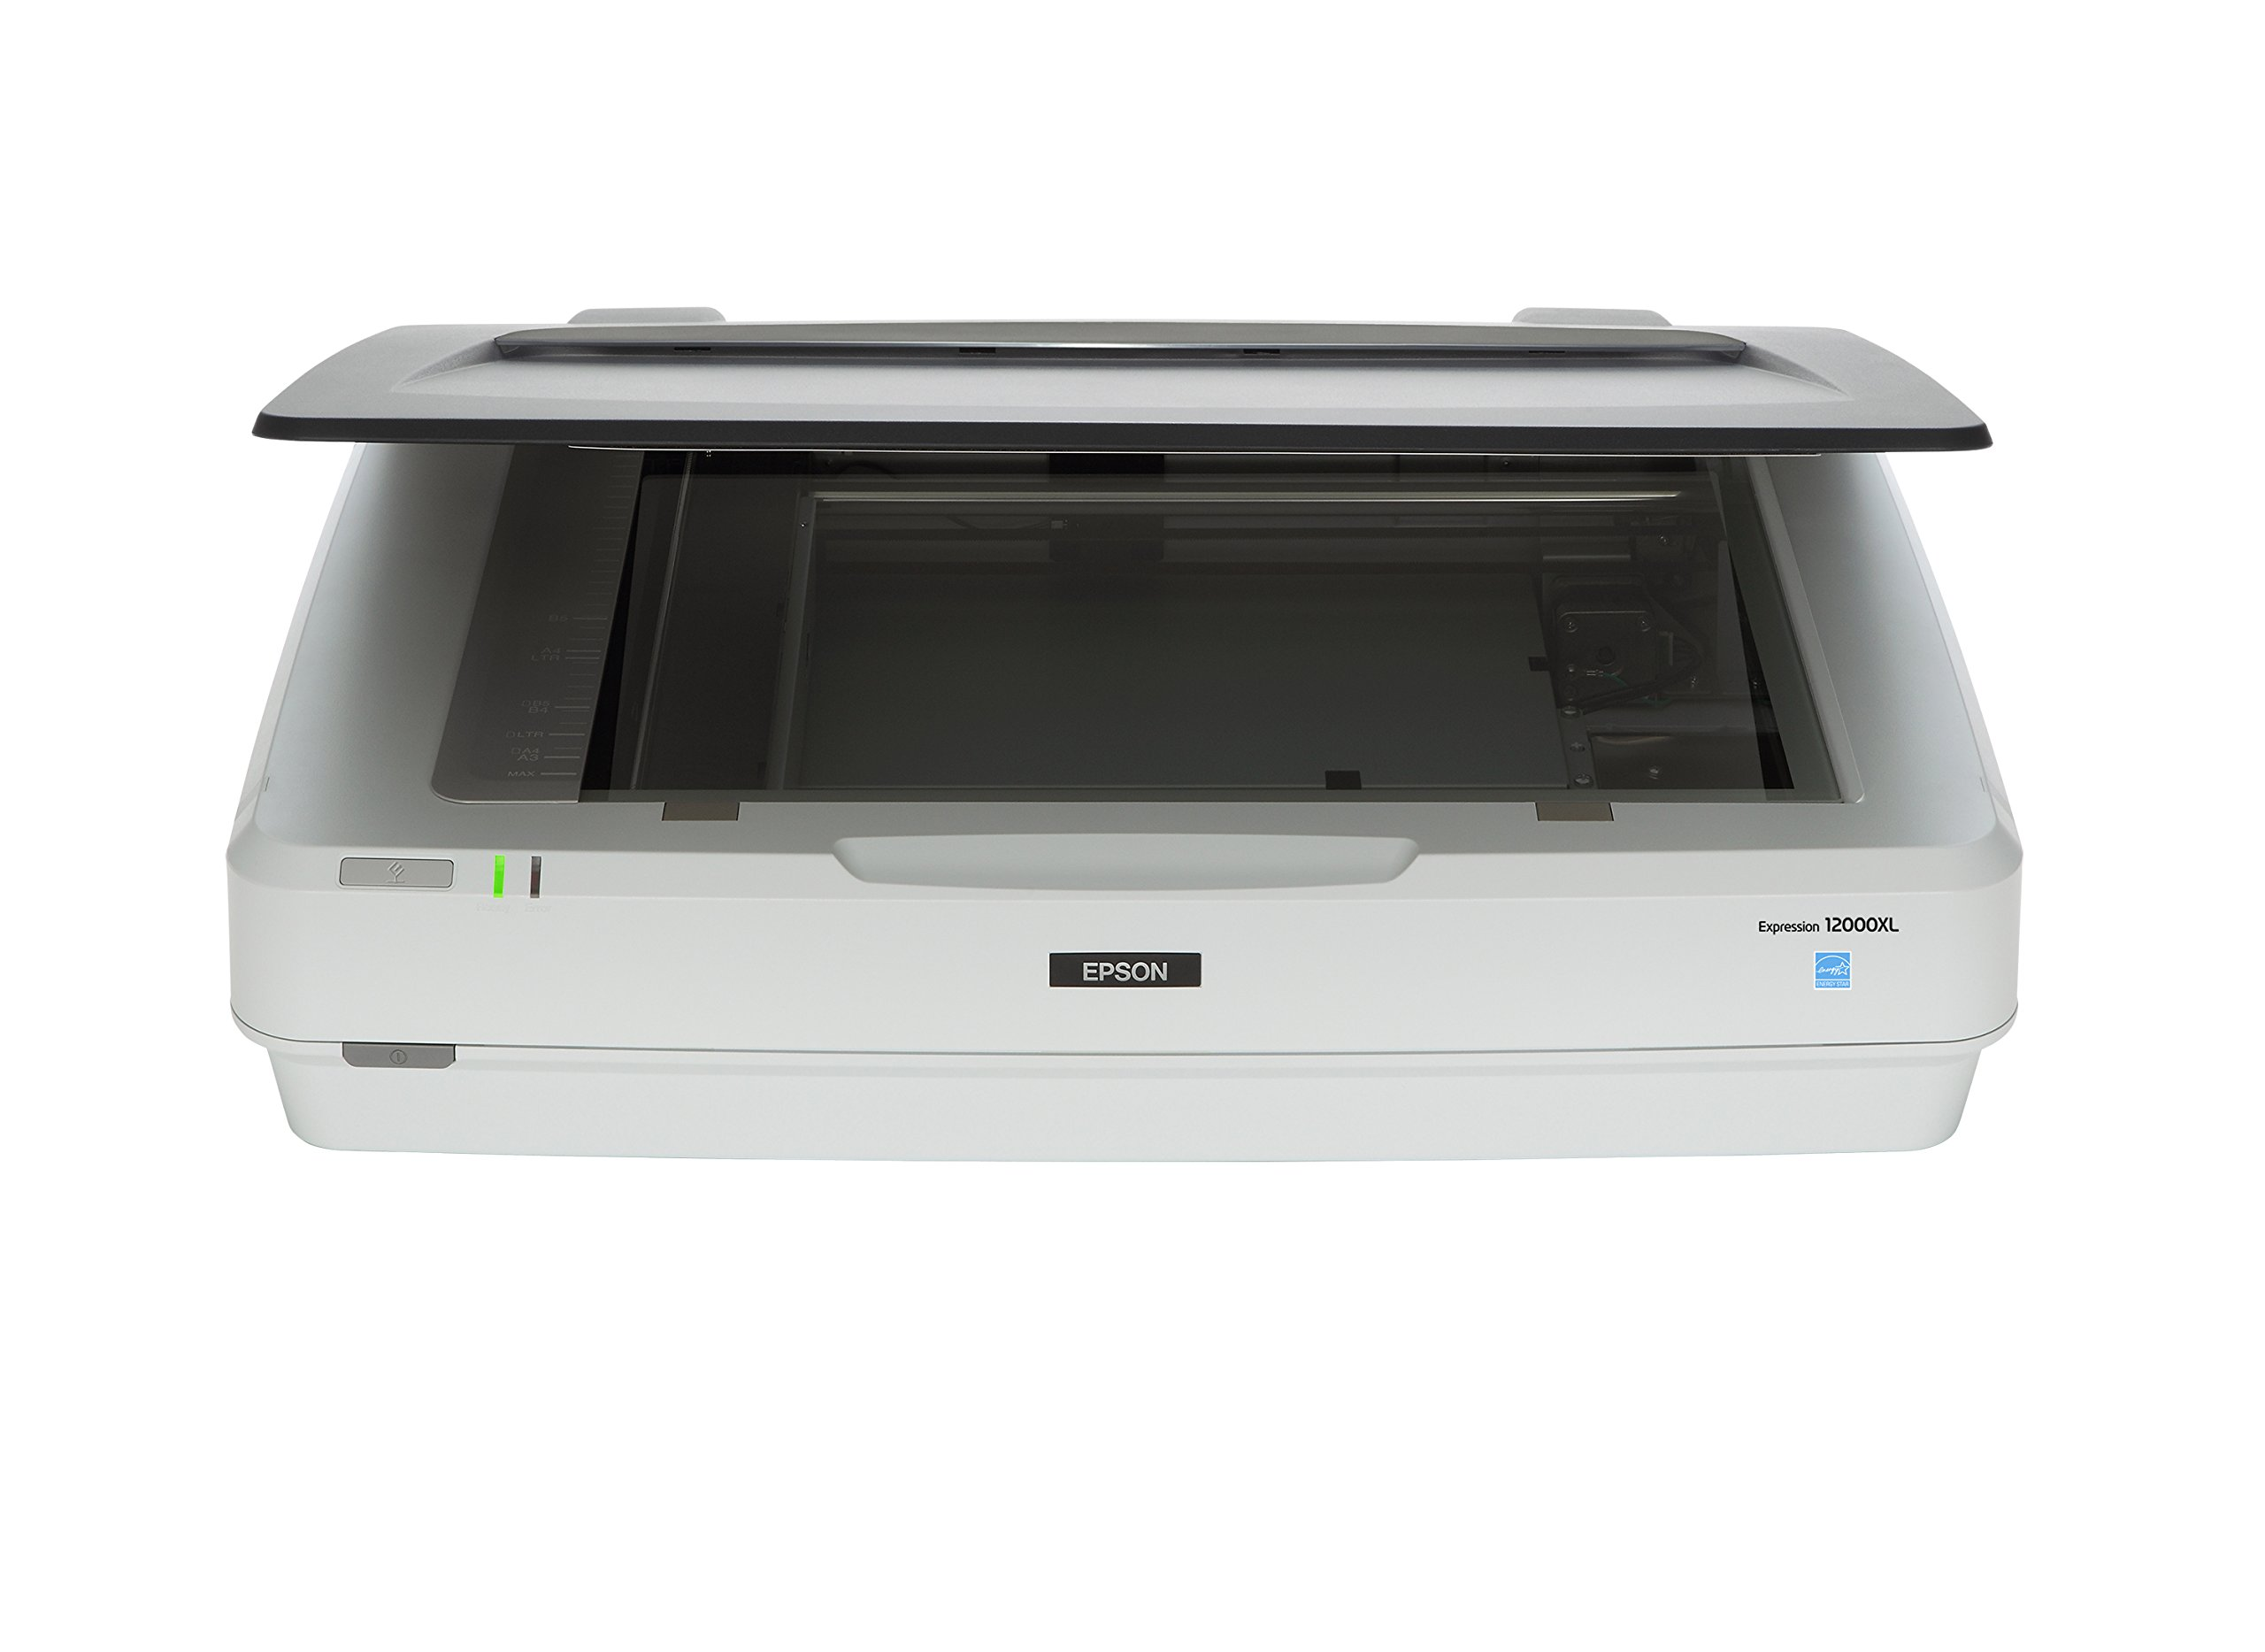 Epson 12000XL-GA Expression Flatbed Scanner by Epson (Image #2)